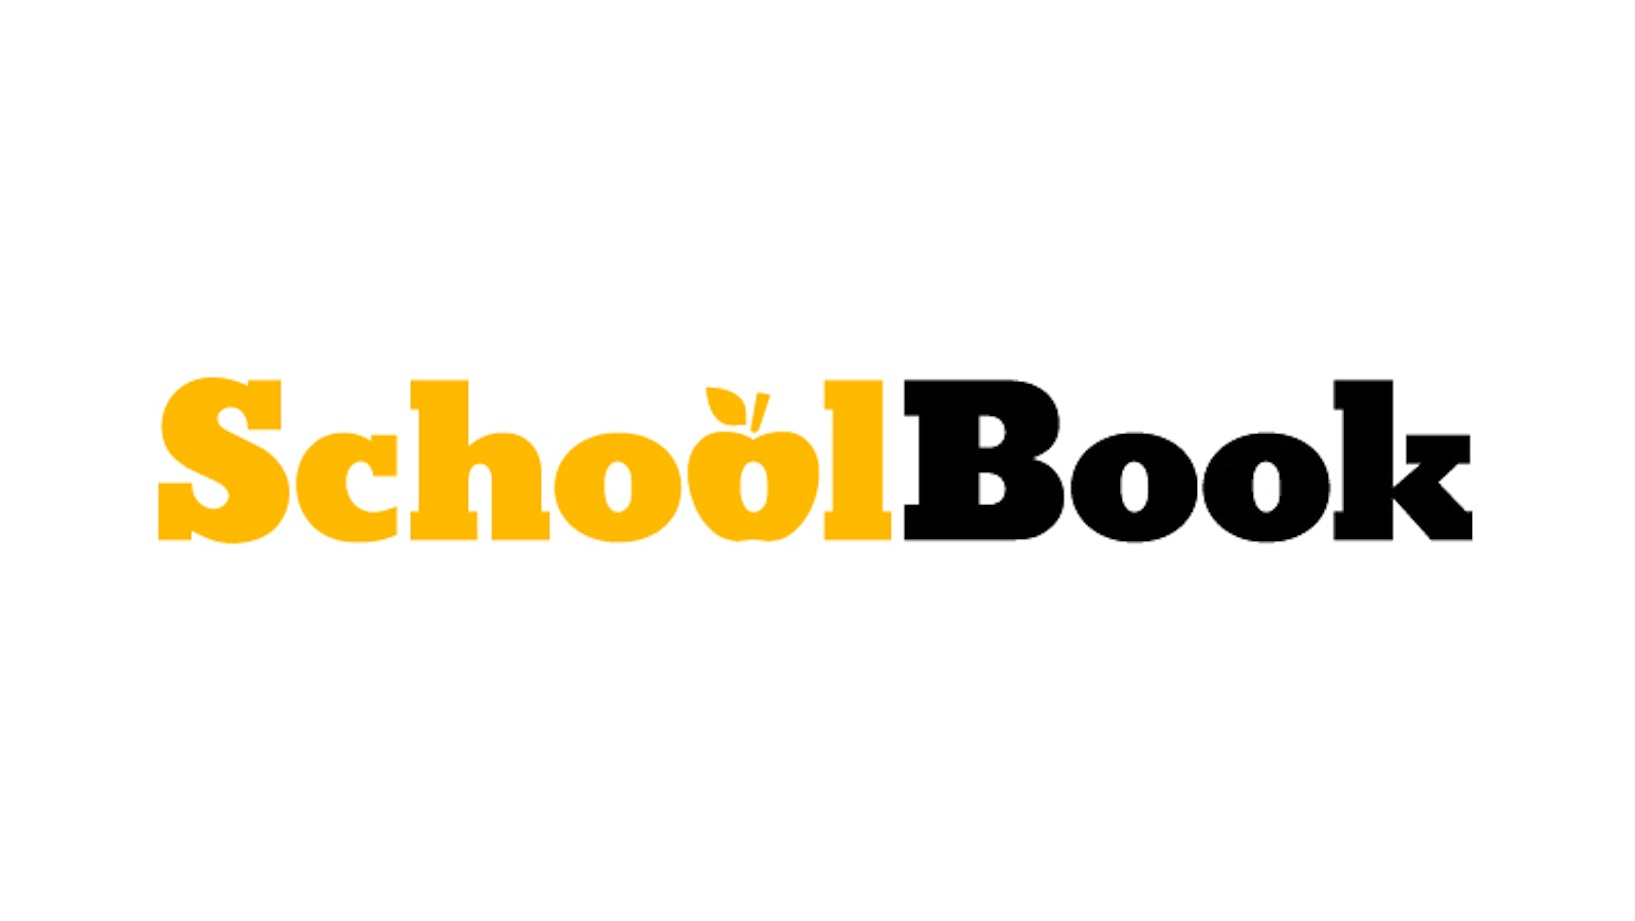 wink_new-york-times_schoolbook1